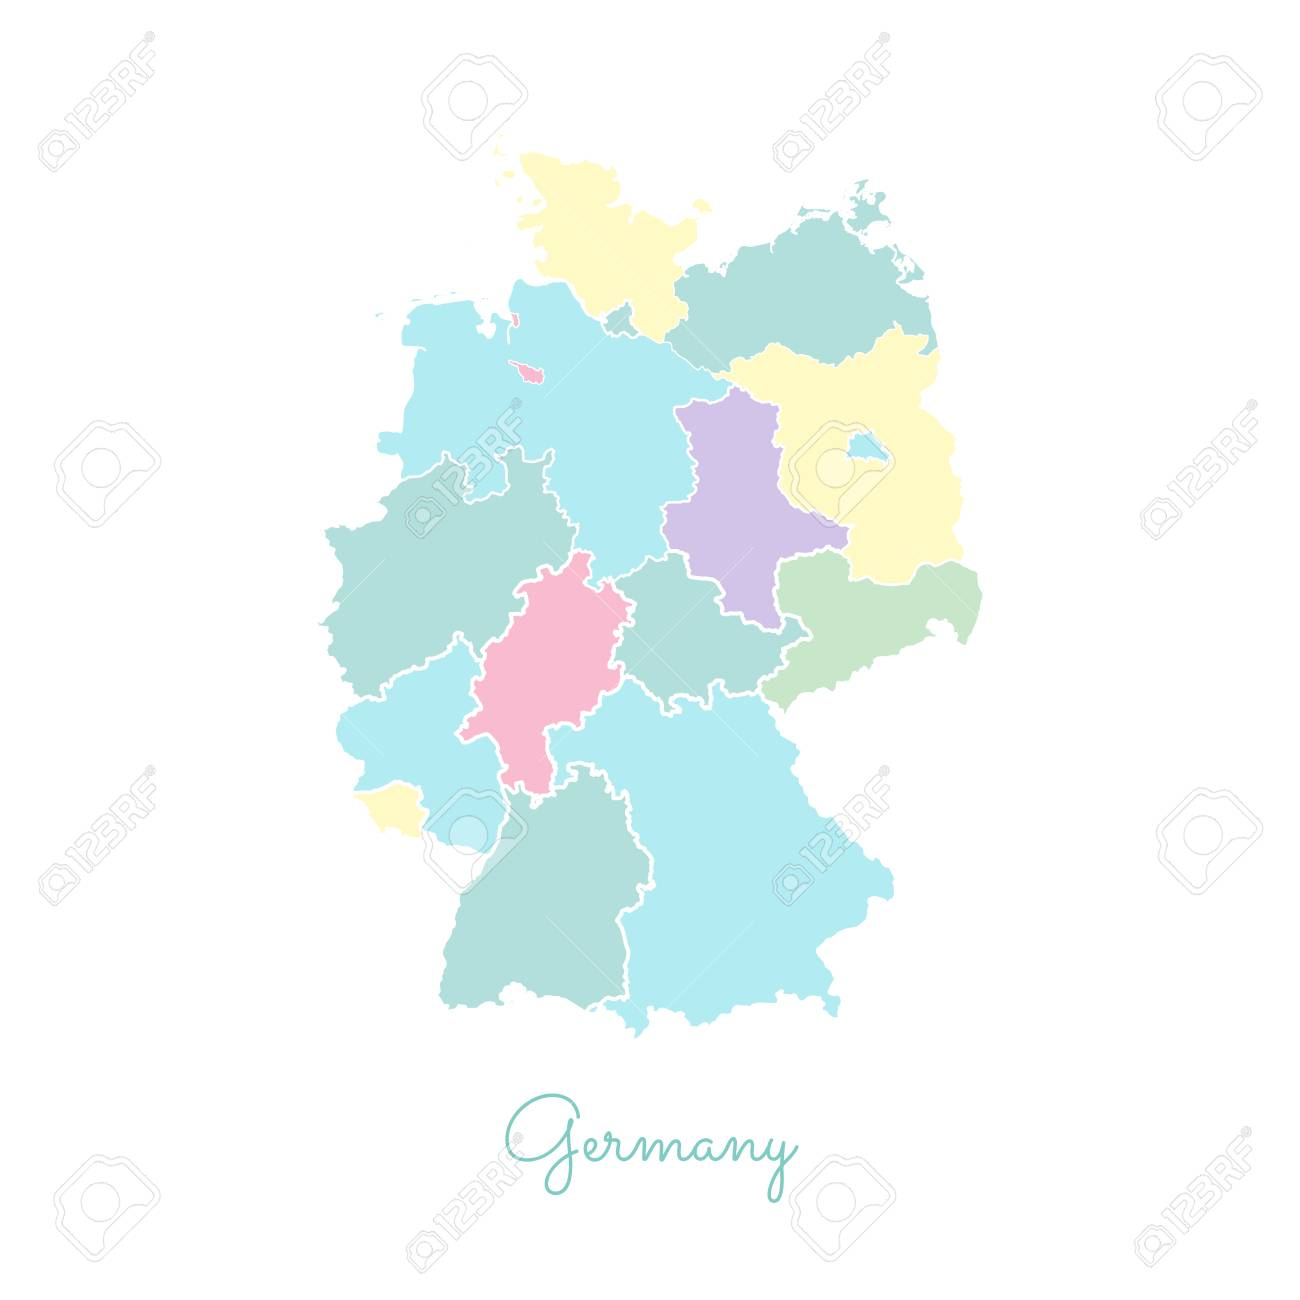 Regions Of Germany Map.Germany Region Map Colorful With White Outline Detailed Map